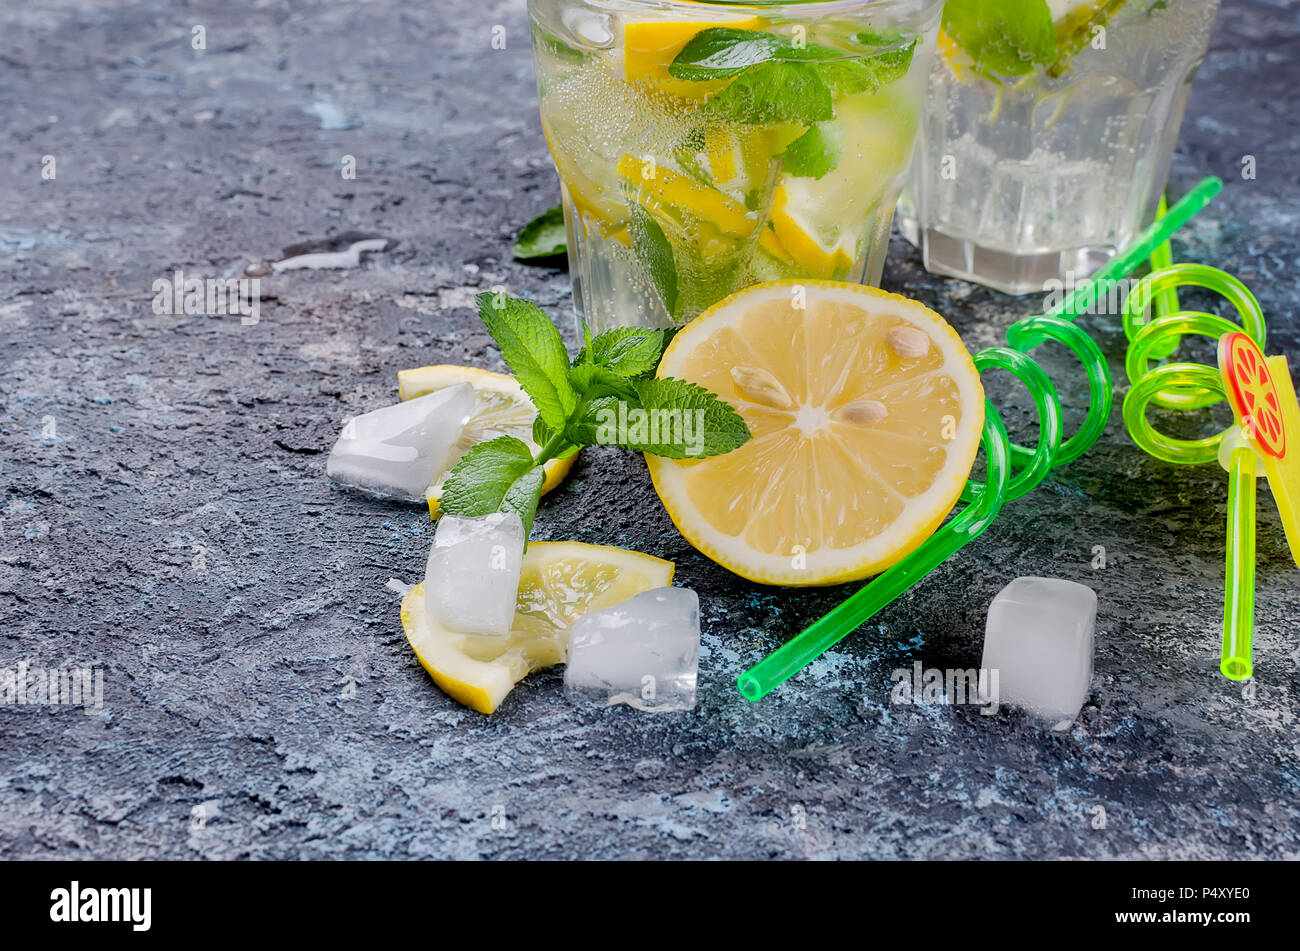 Lemon and mint,  ingredient for Cocktails mojito close up on dark bacground, copy spase, selective focus - Stock Image